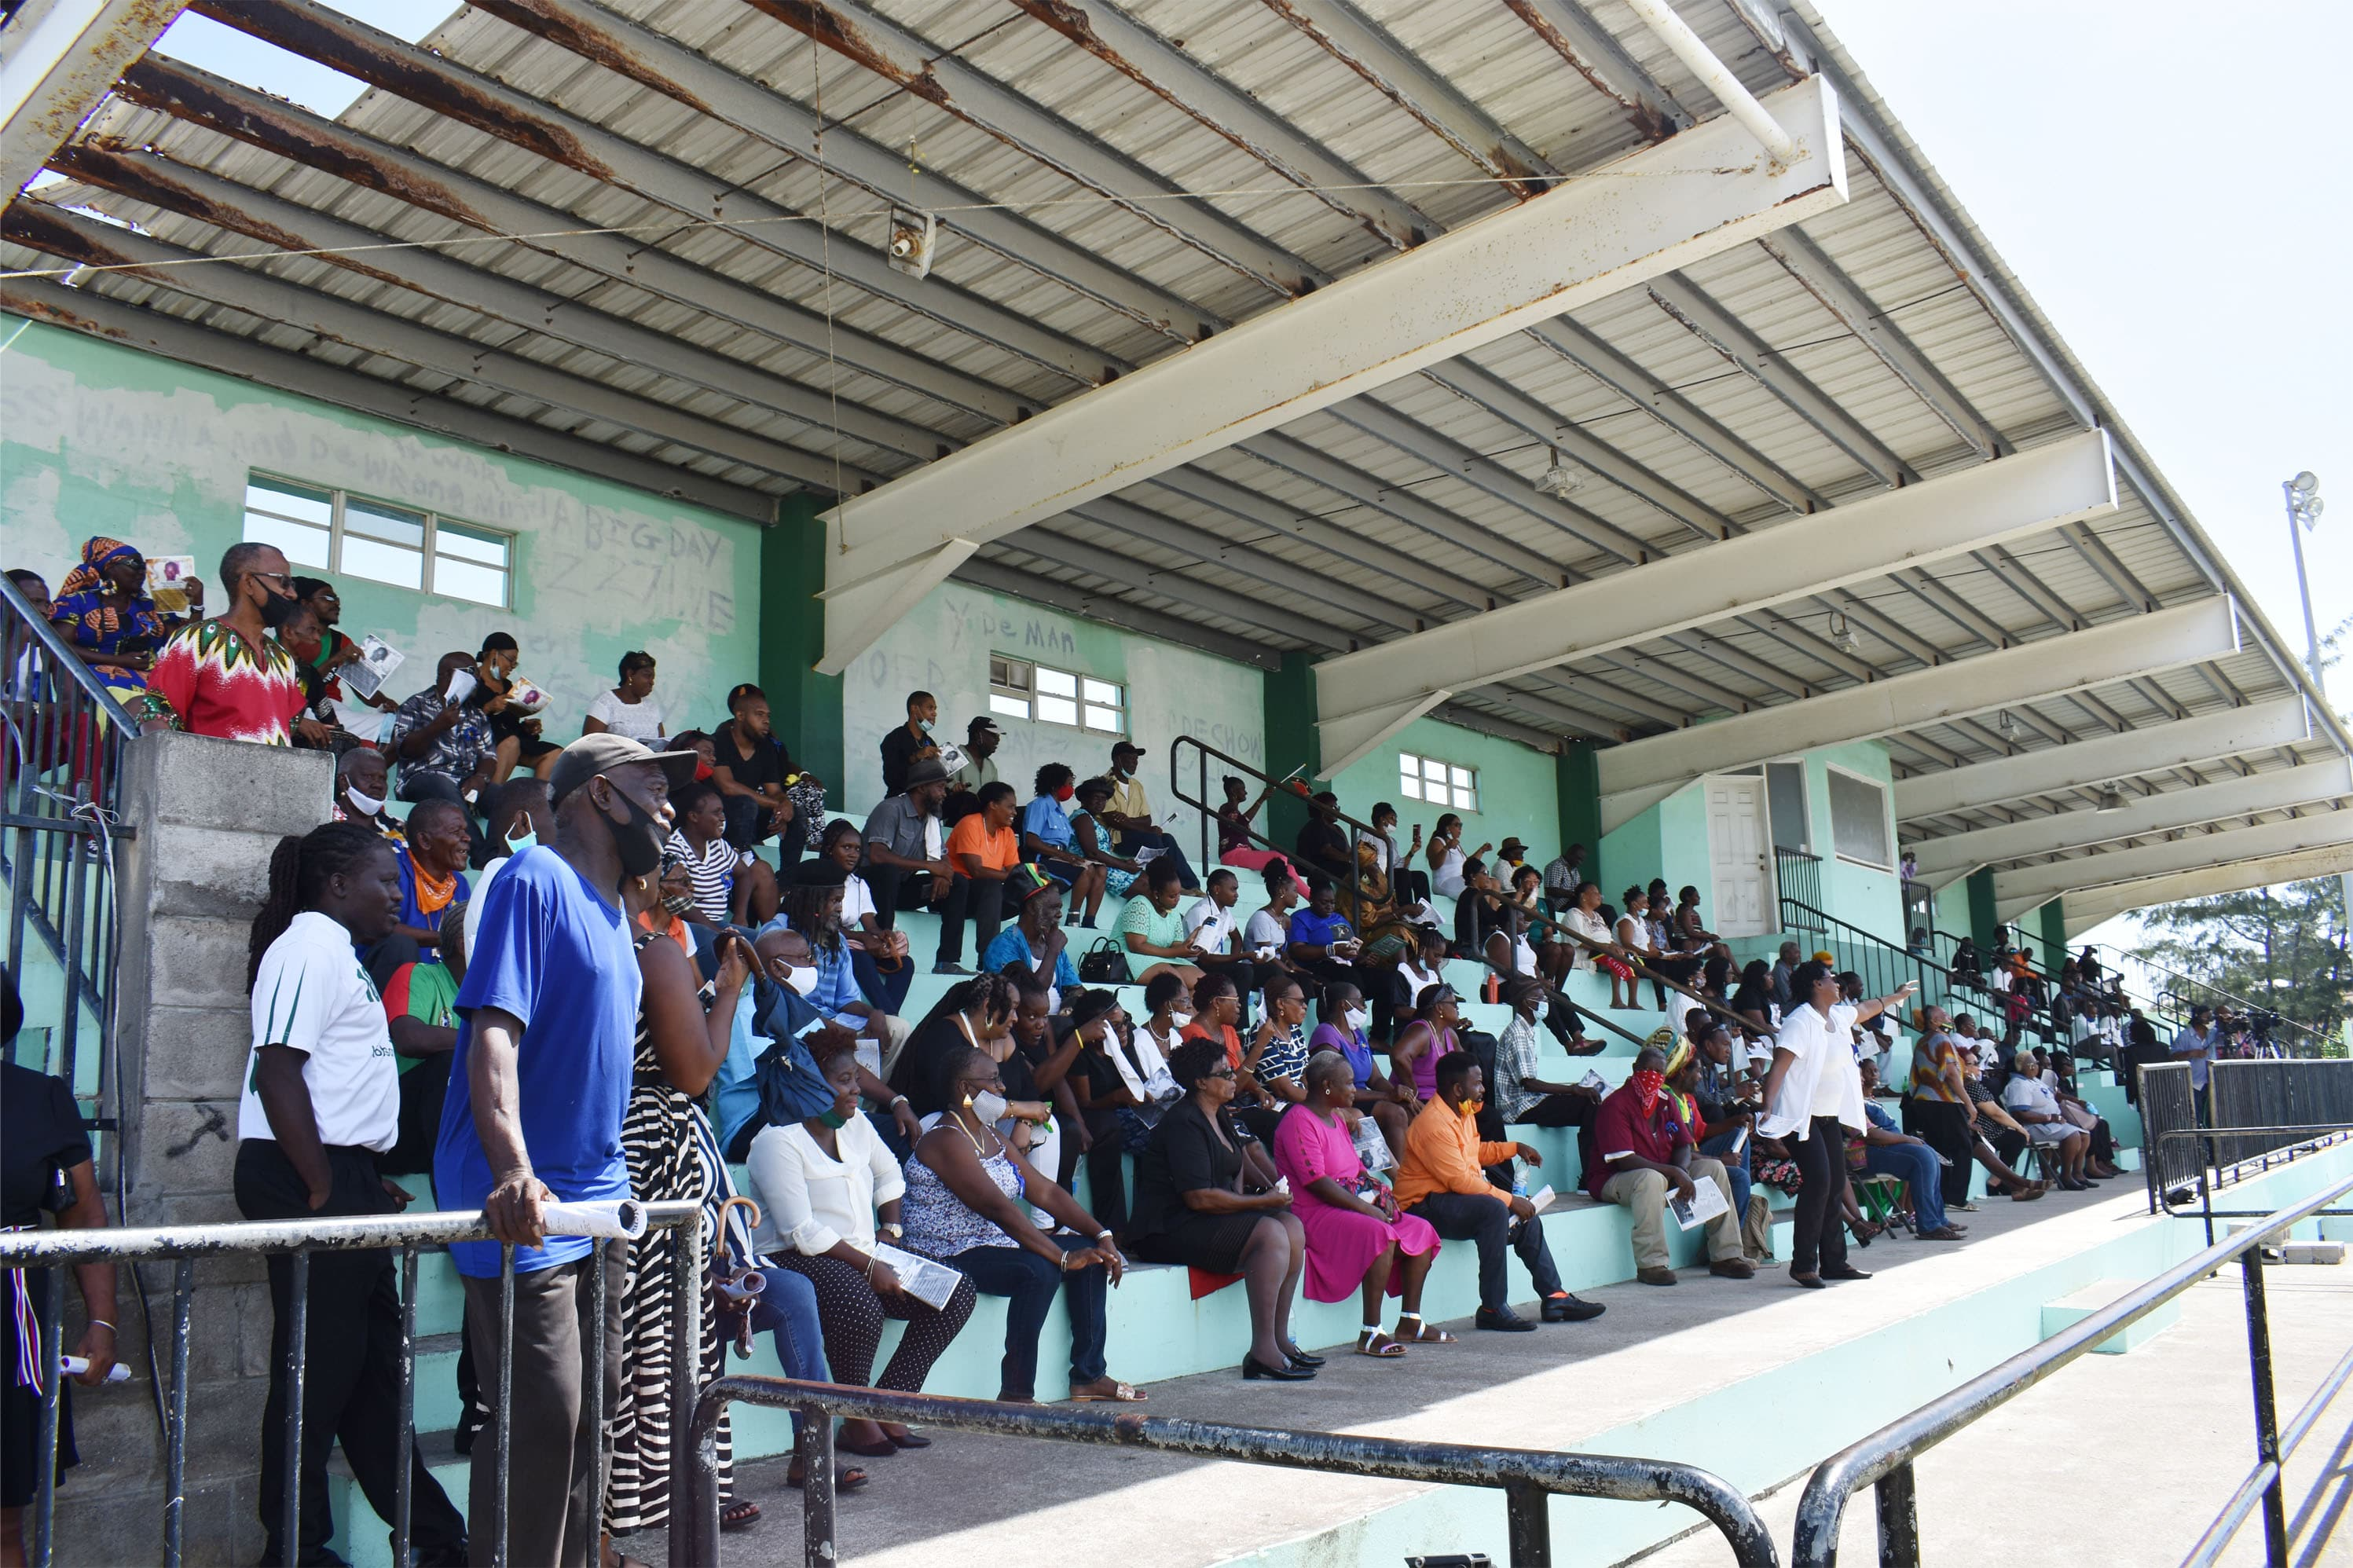 A section of the crowd that had attended the funeral service at Garden's Playfield.